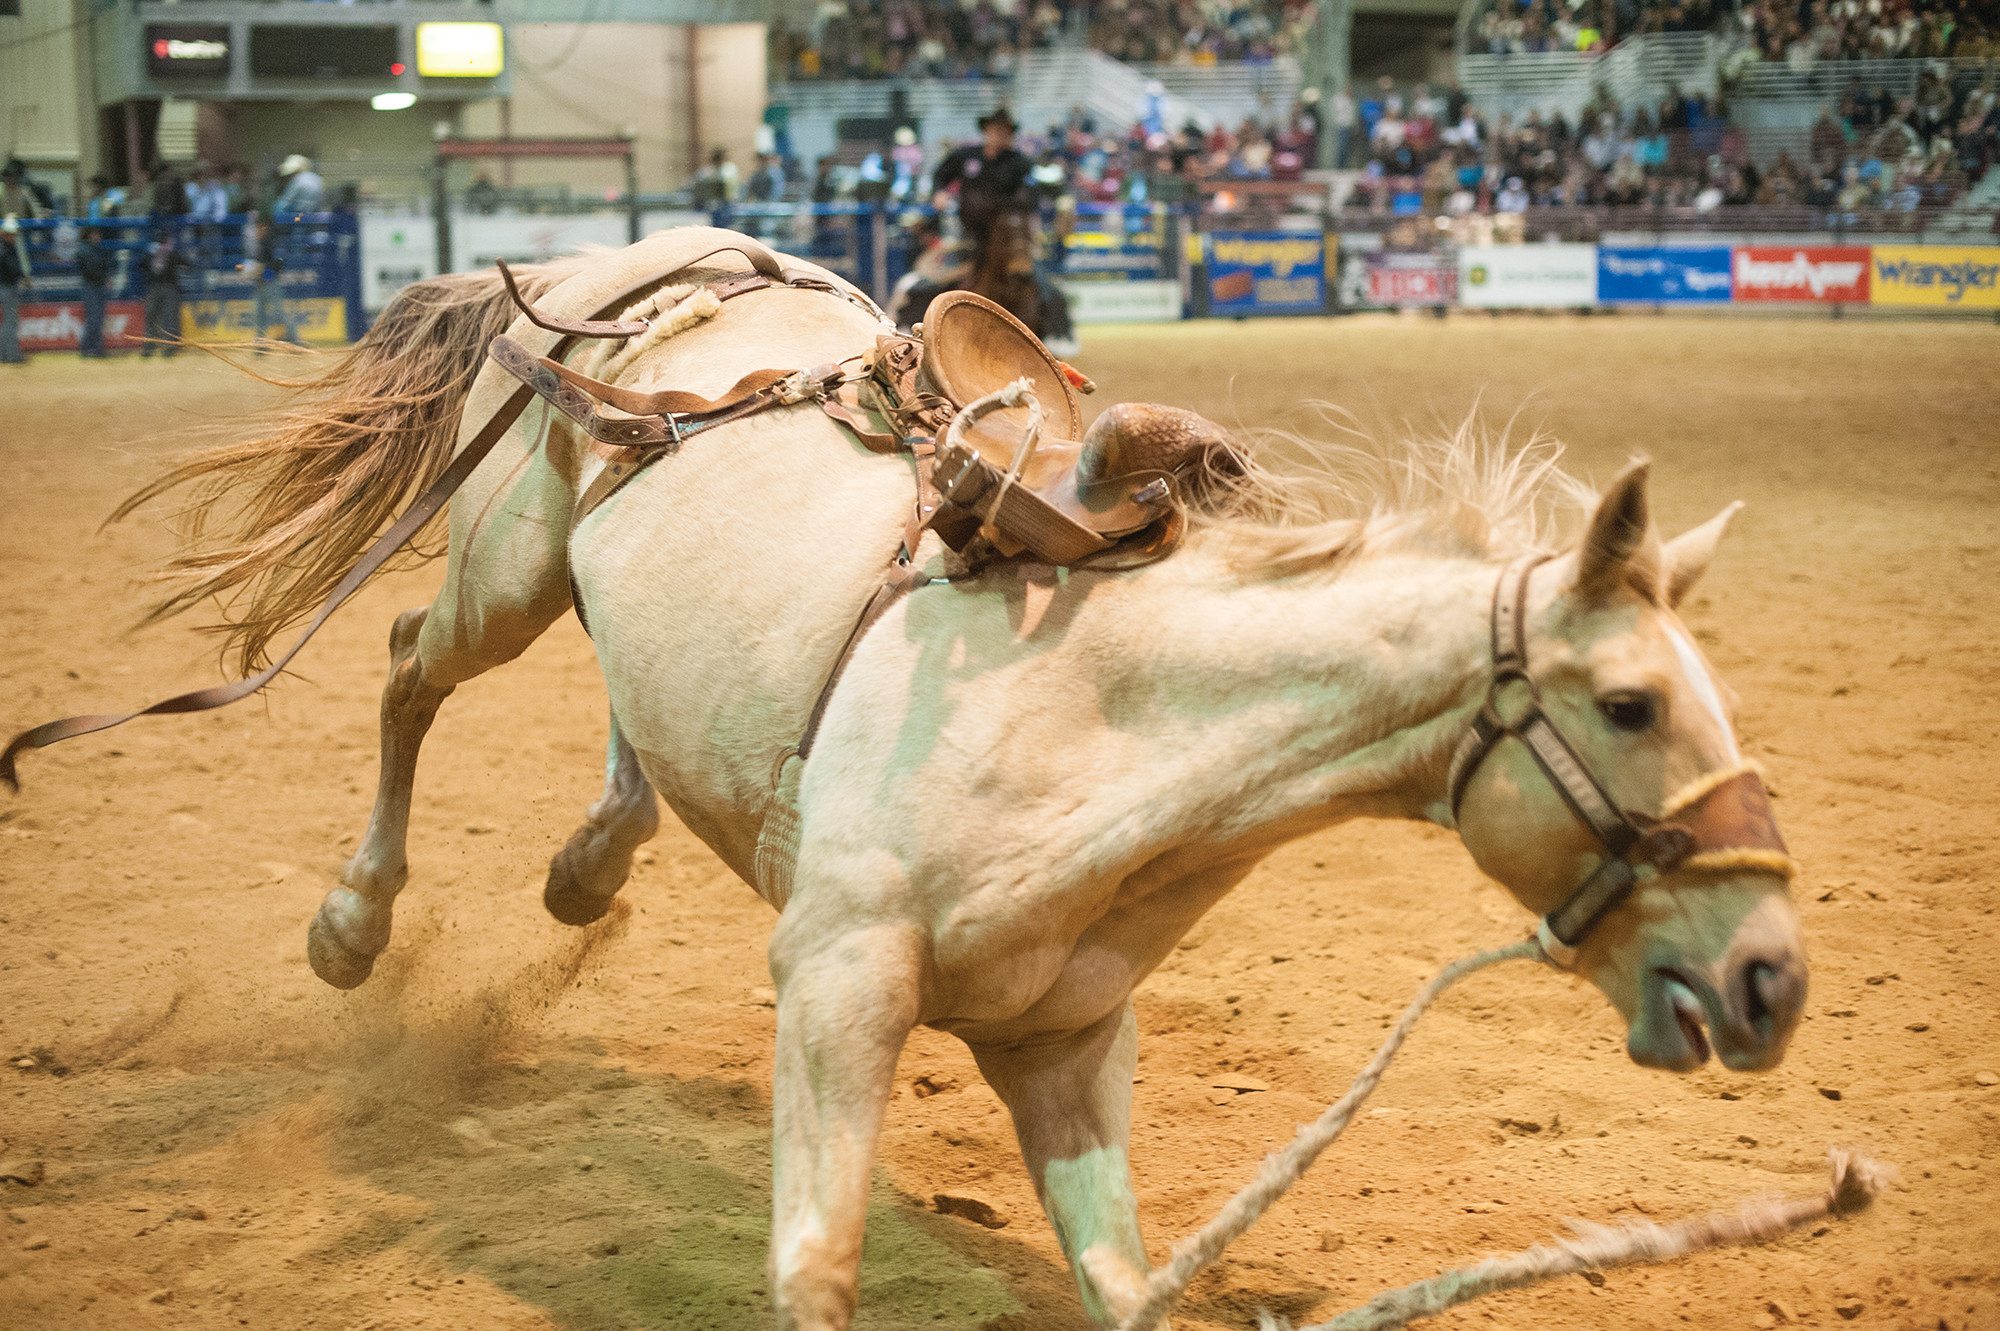 BUCK THIS: At the rodeo, if you don't ride, you don't get paid.